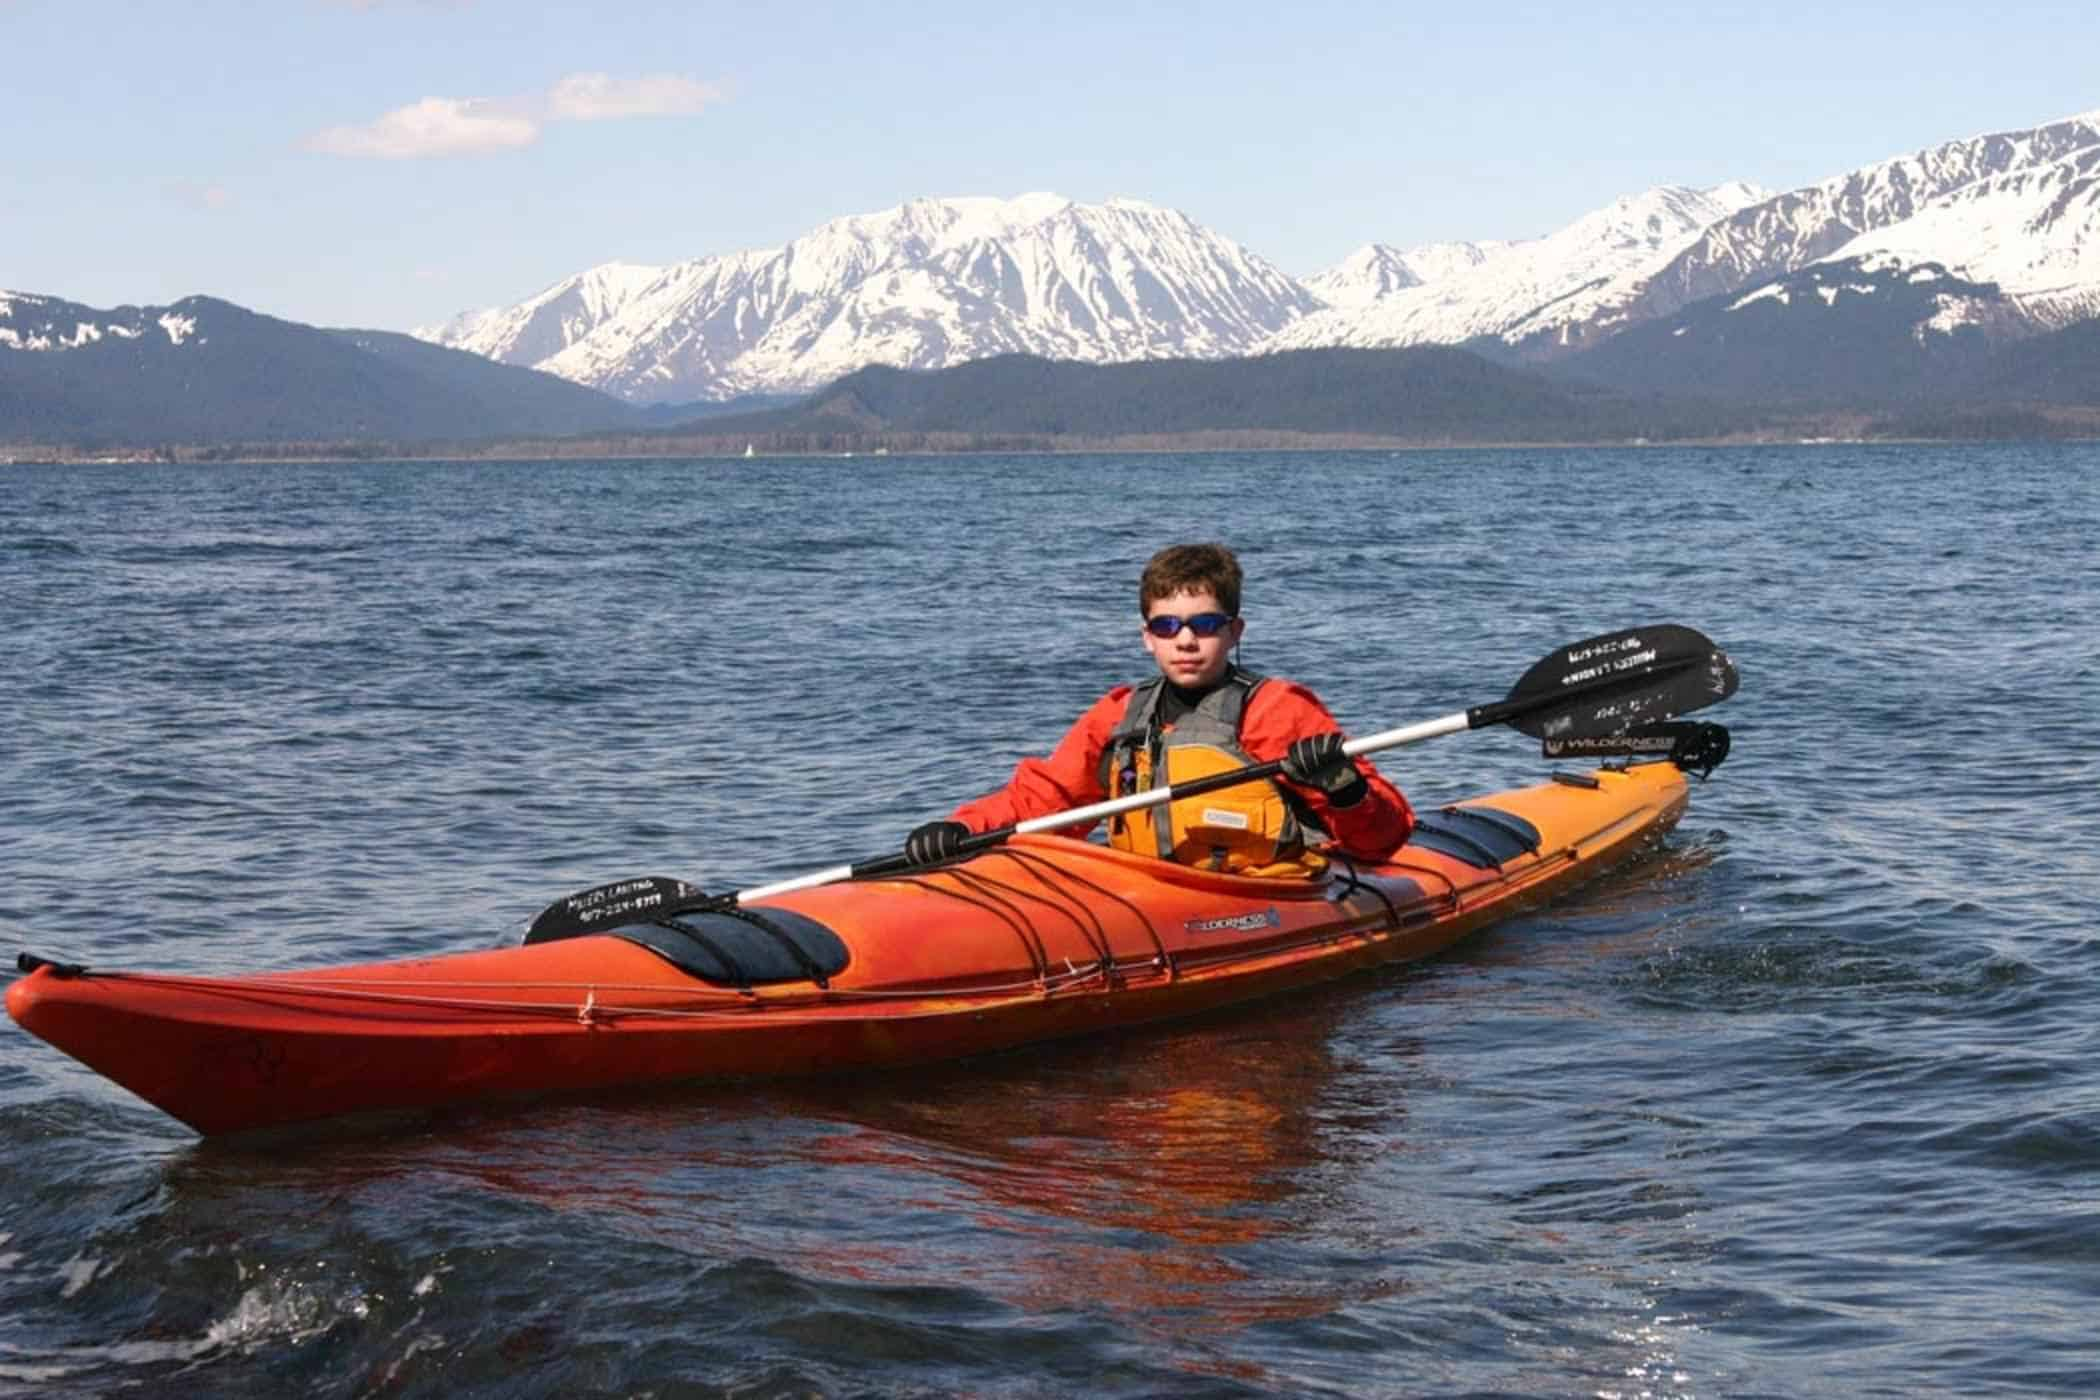 Boy paddling a kayak